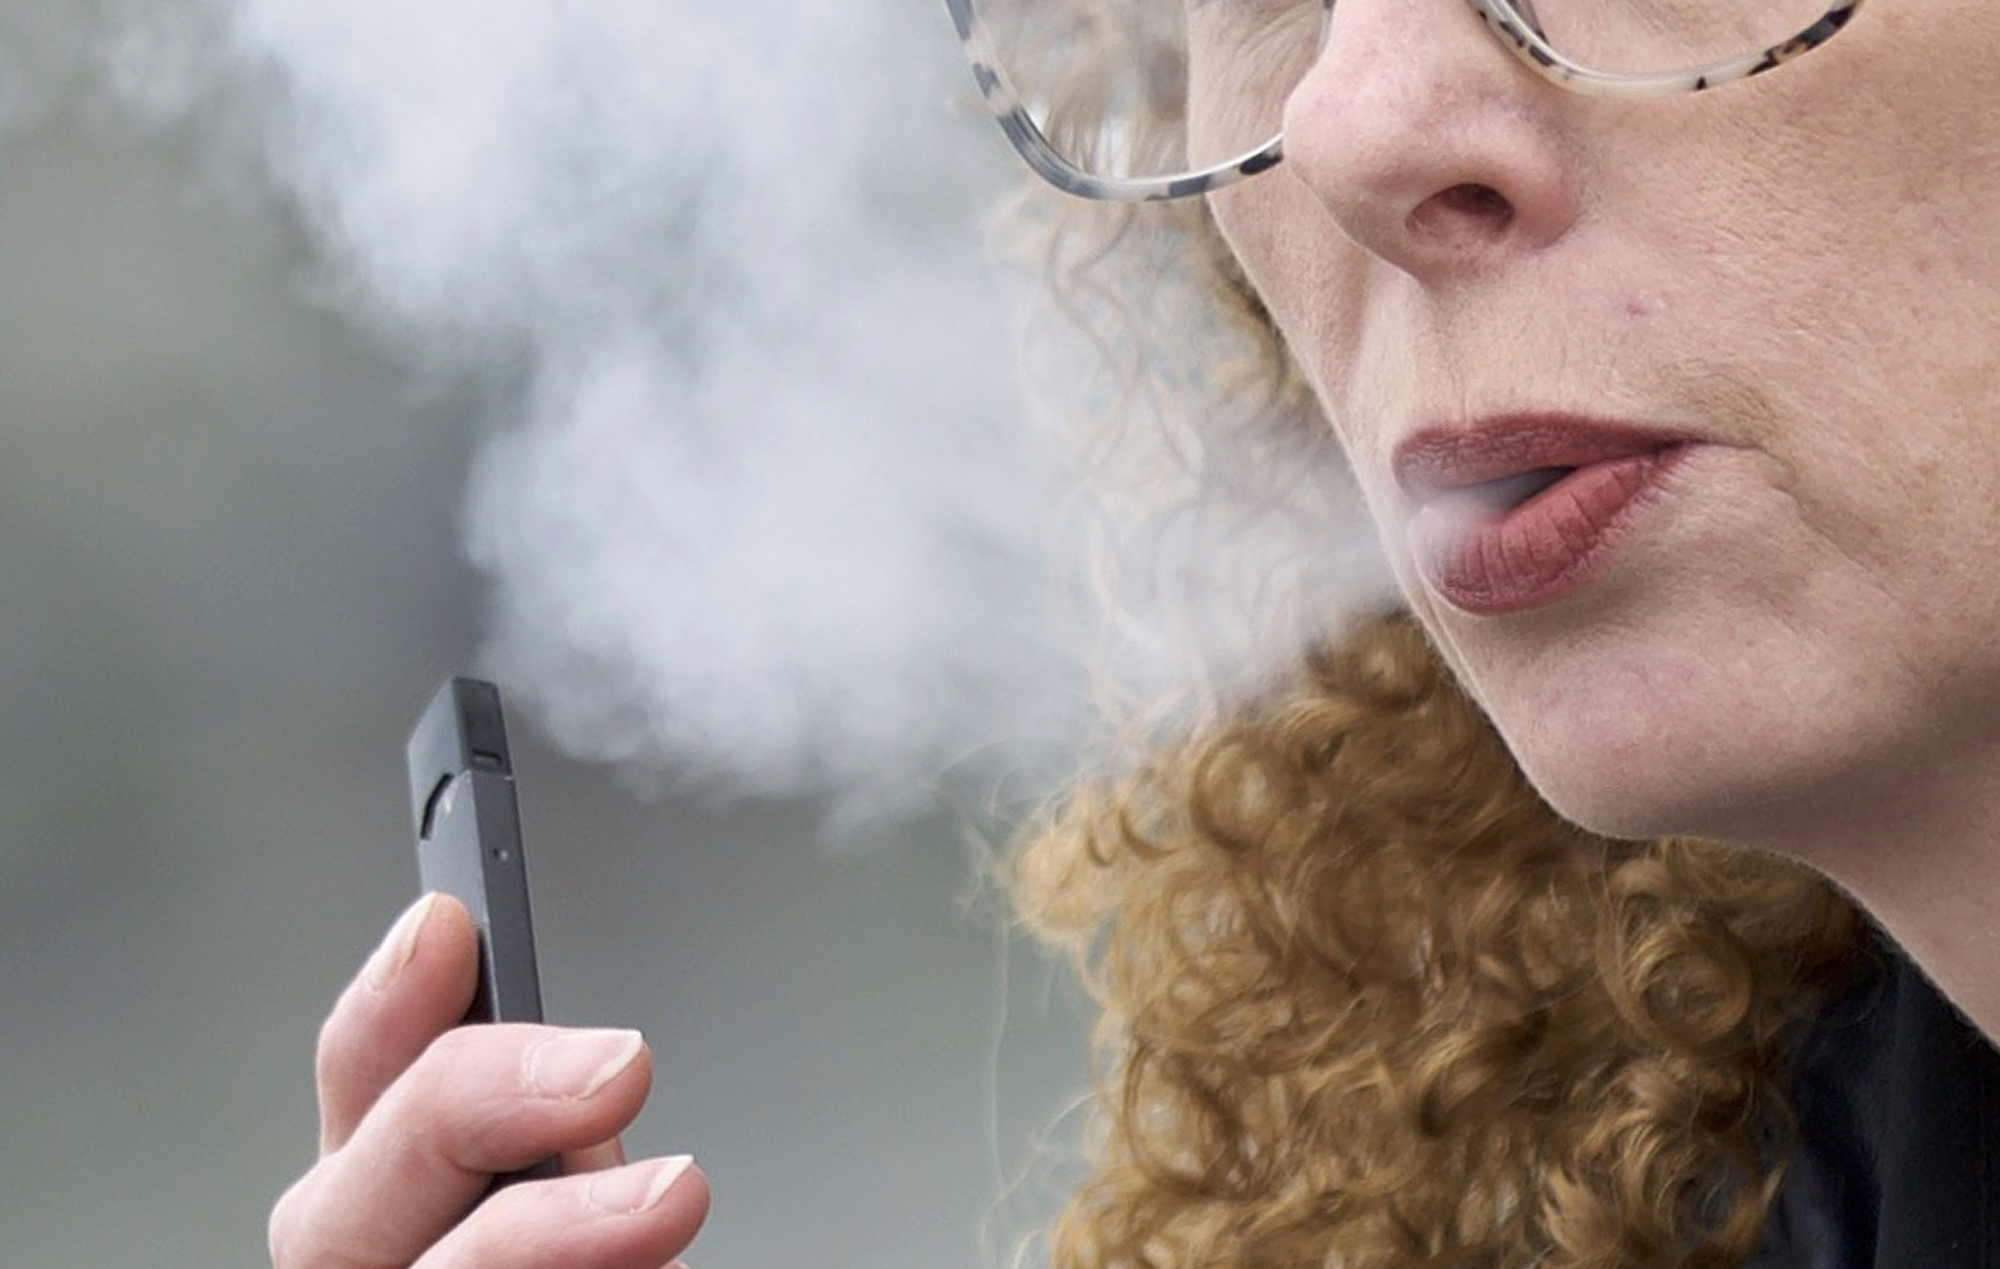 In this April 16, 2019 file photo, a woman exhales while vaping from a Juul pen e-cigarette in Vancouver, Wash. Using e-cigarettes, often called vaping, has now overtaken smoking traditional cigarettes in popularity among high school students, says the Centers for Disease Control and Prevention.